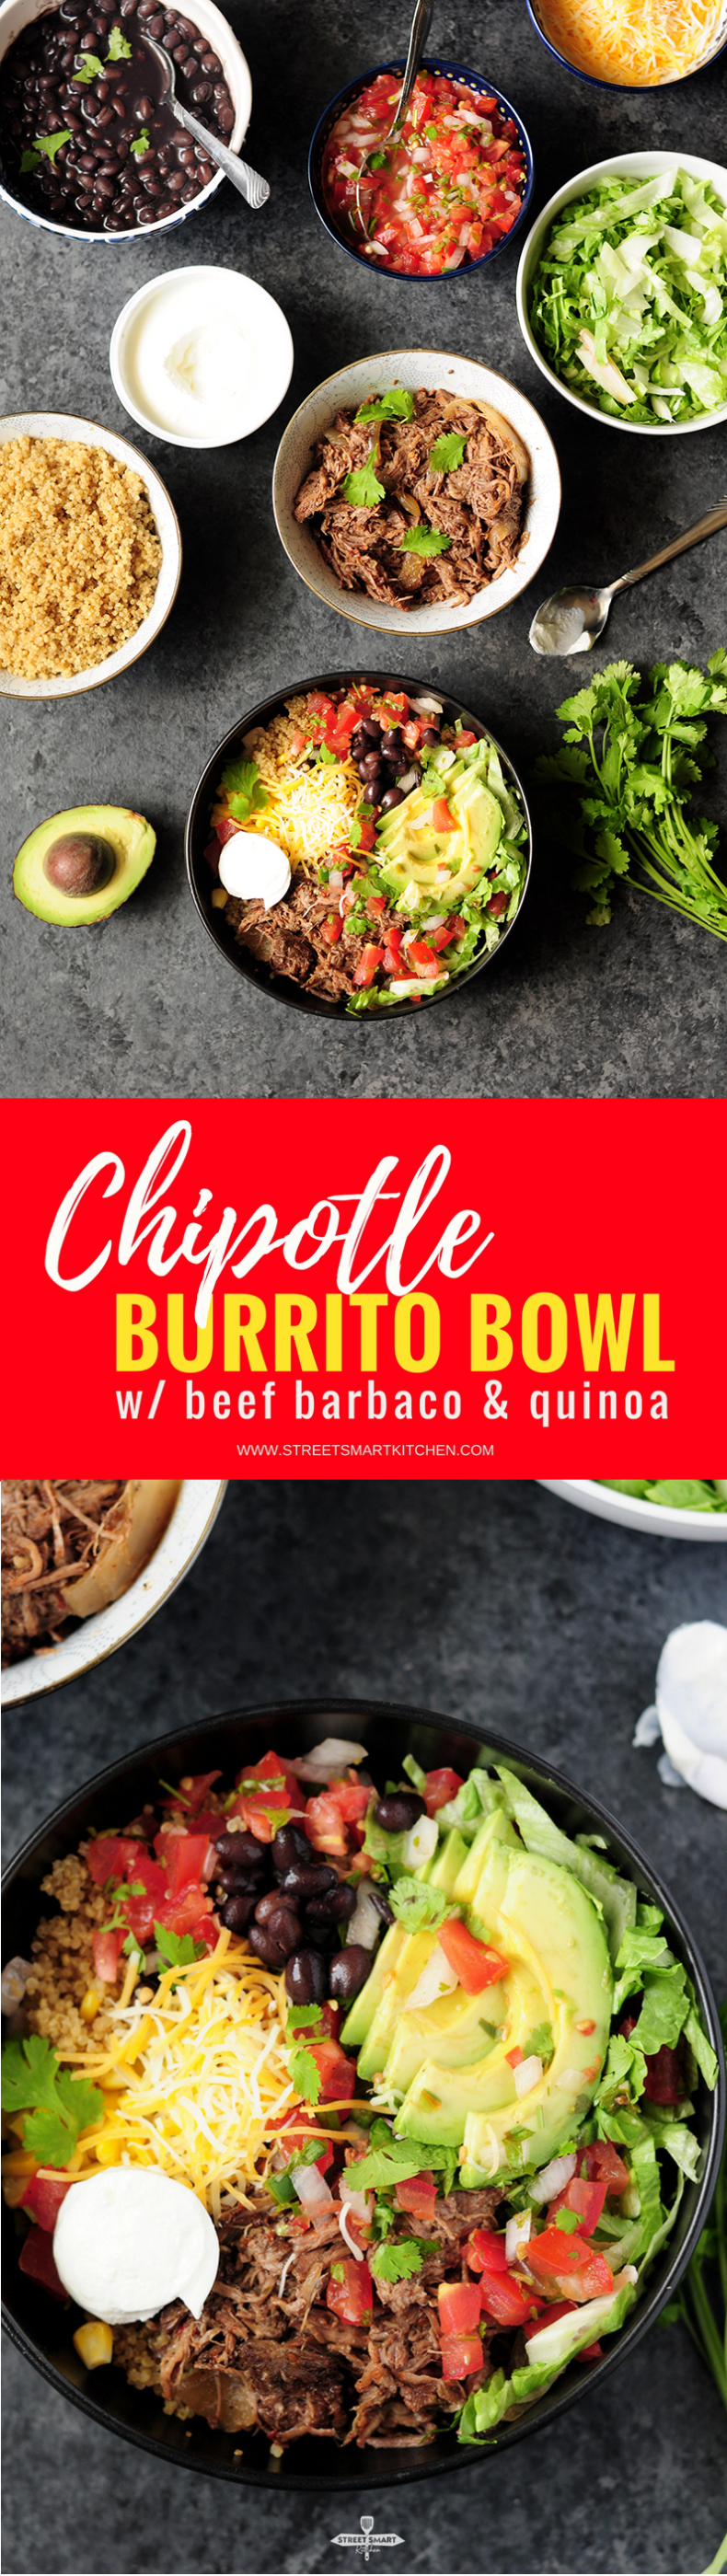 Recreate a healthy Chipotle burrito bowl in your own kitchen in just 15 minutes with slow cooker beef barbacoa and quinoa.